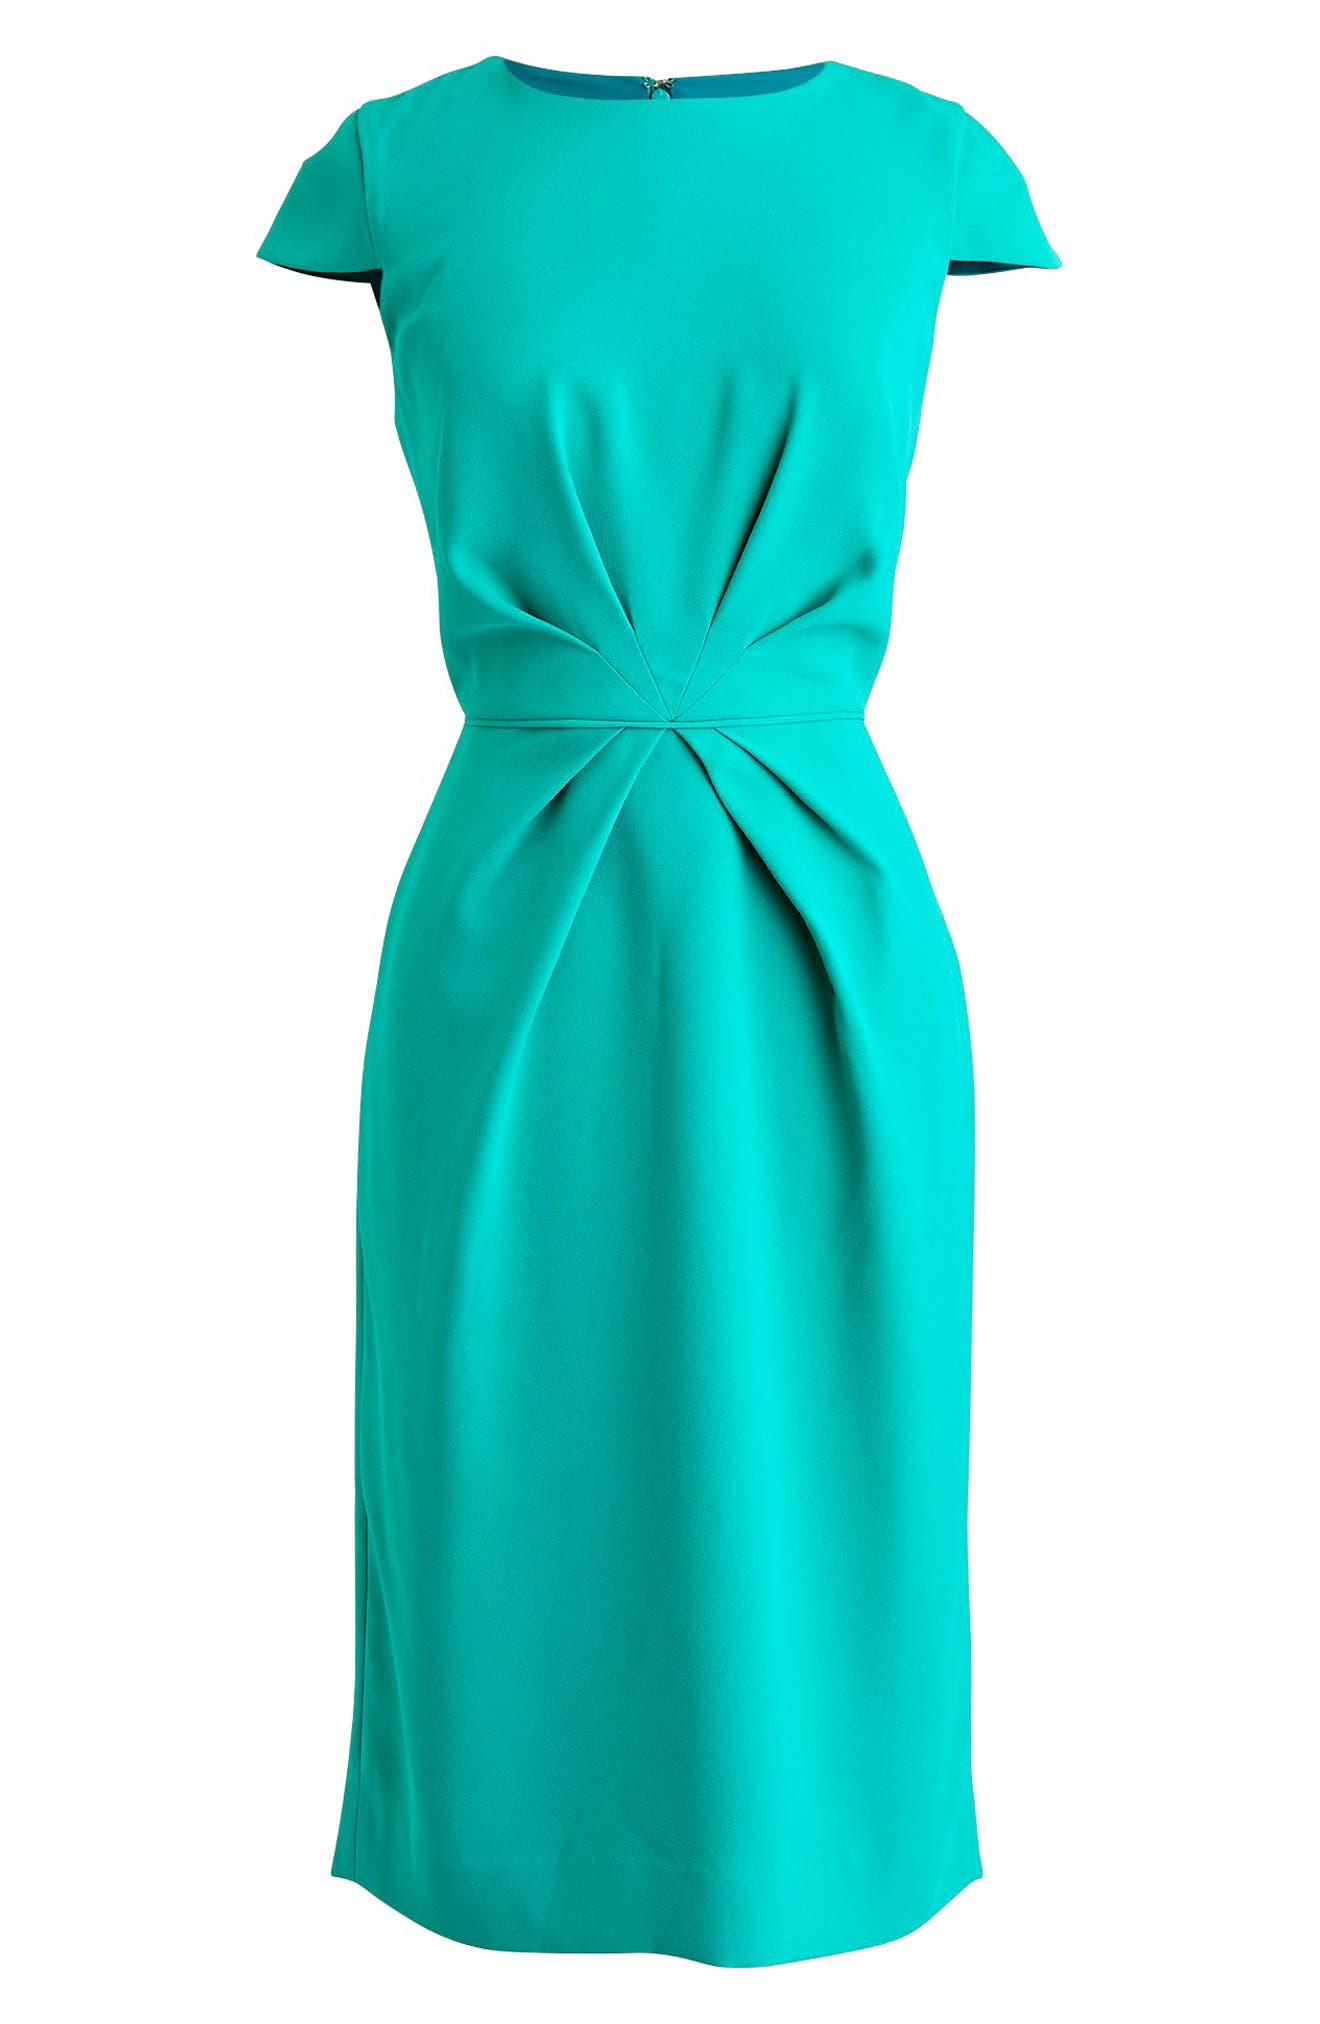 J.Crew Luz Tie Front Crepe Dress,                             Alternate thumbnail 4, color,                             Tropical Marine